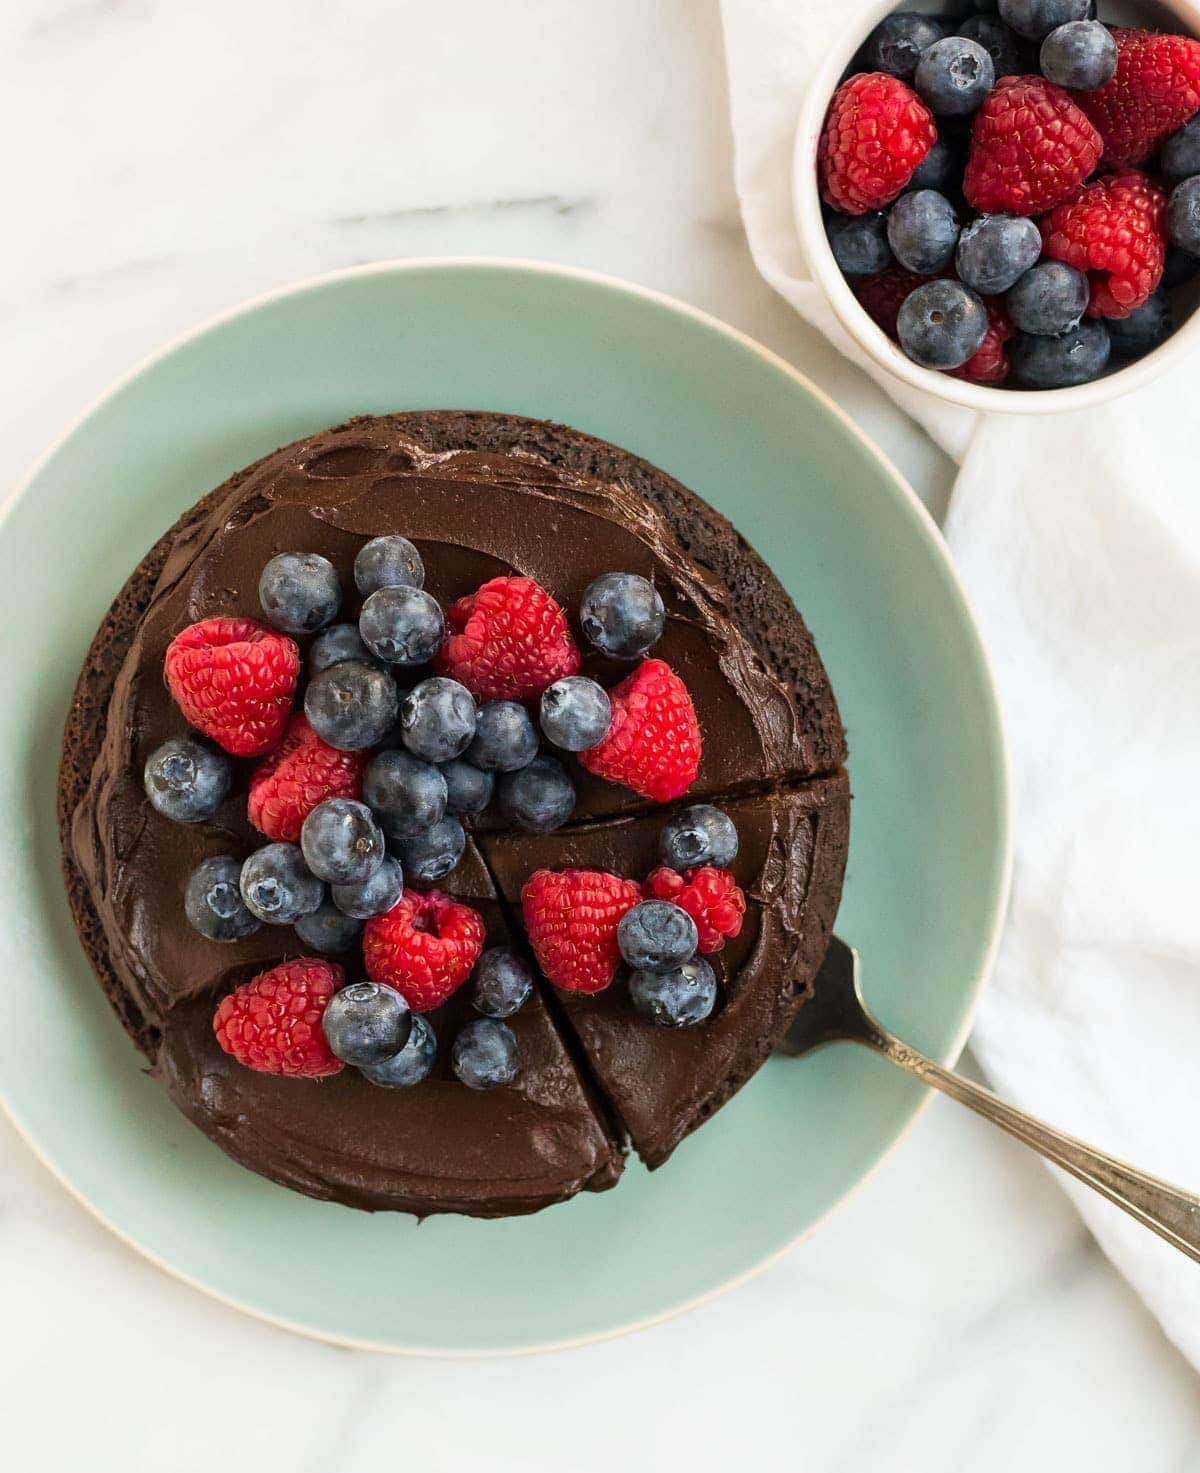 Instant Pot cake on a blue plate with fresh berries on top